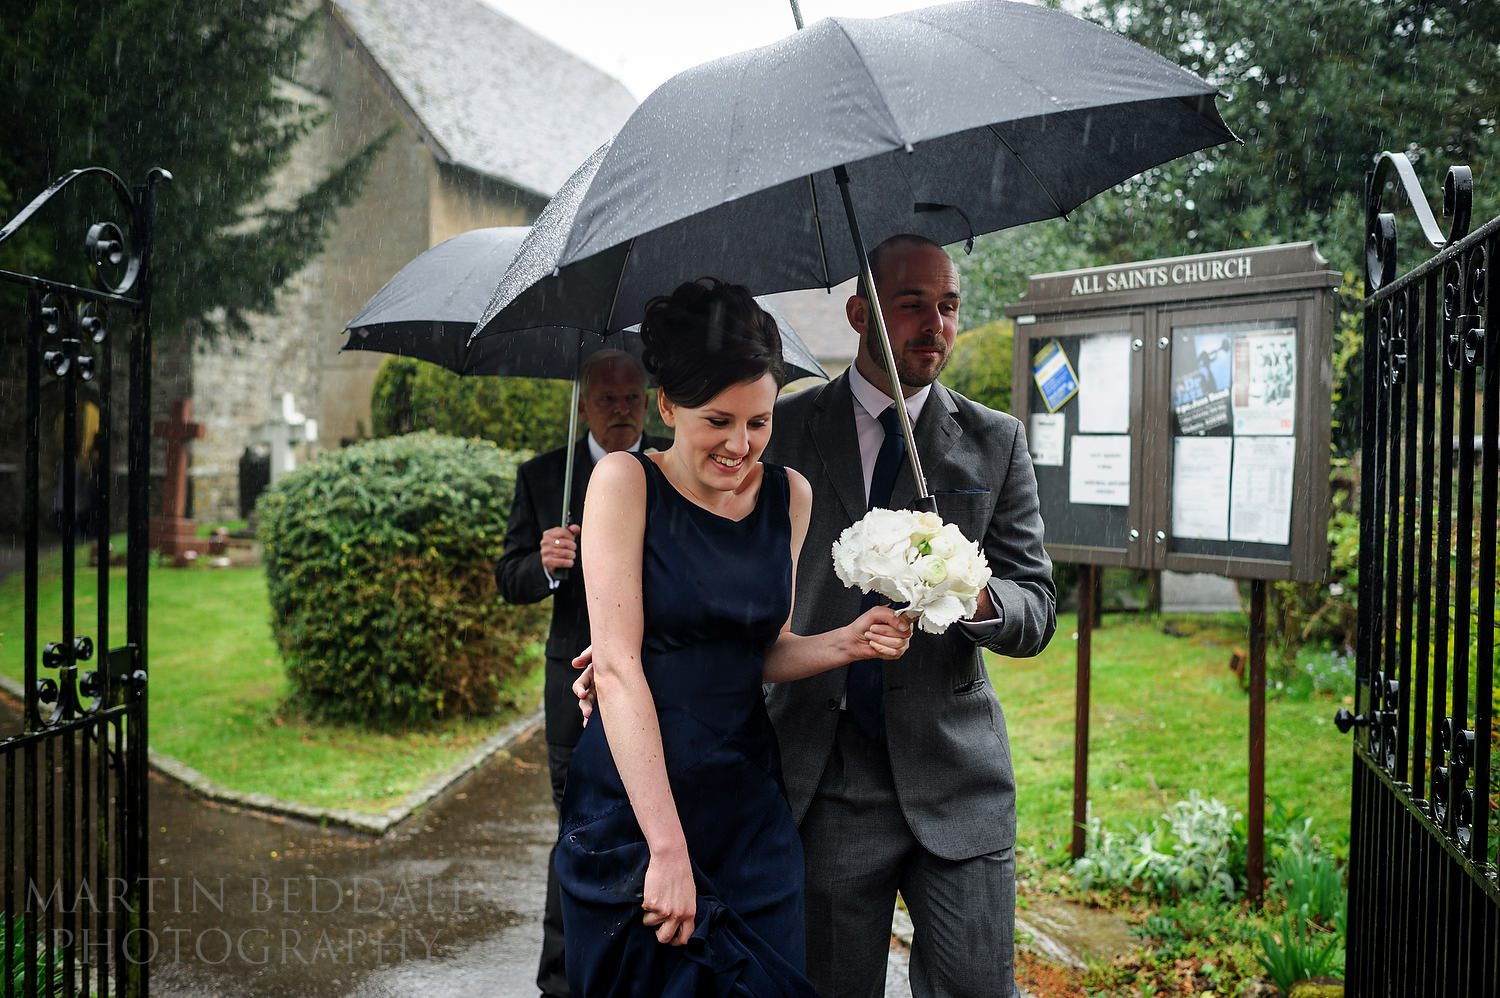 Rain after the wedding ceremony